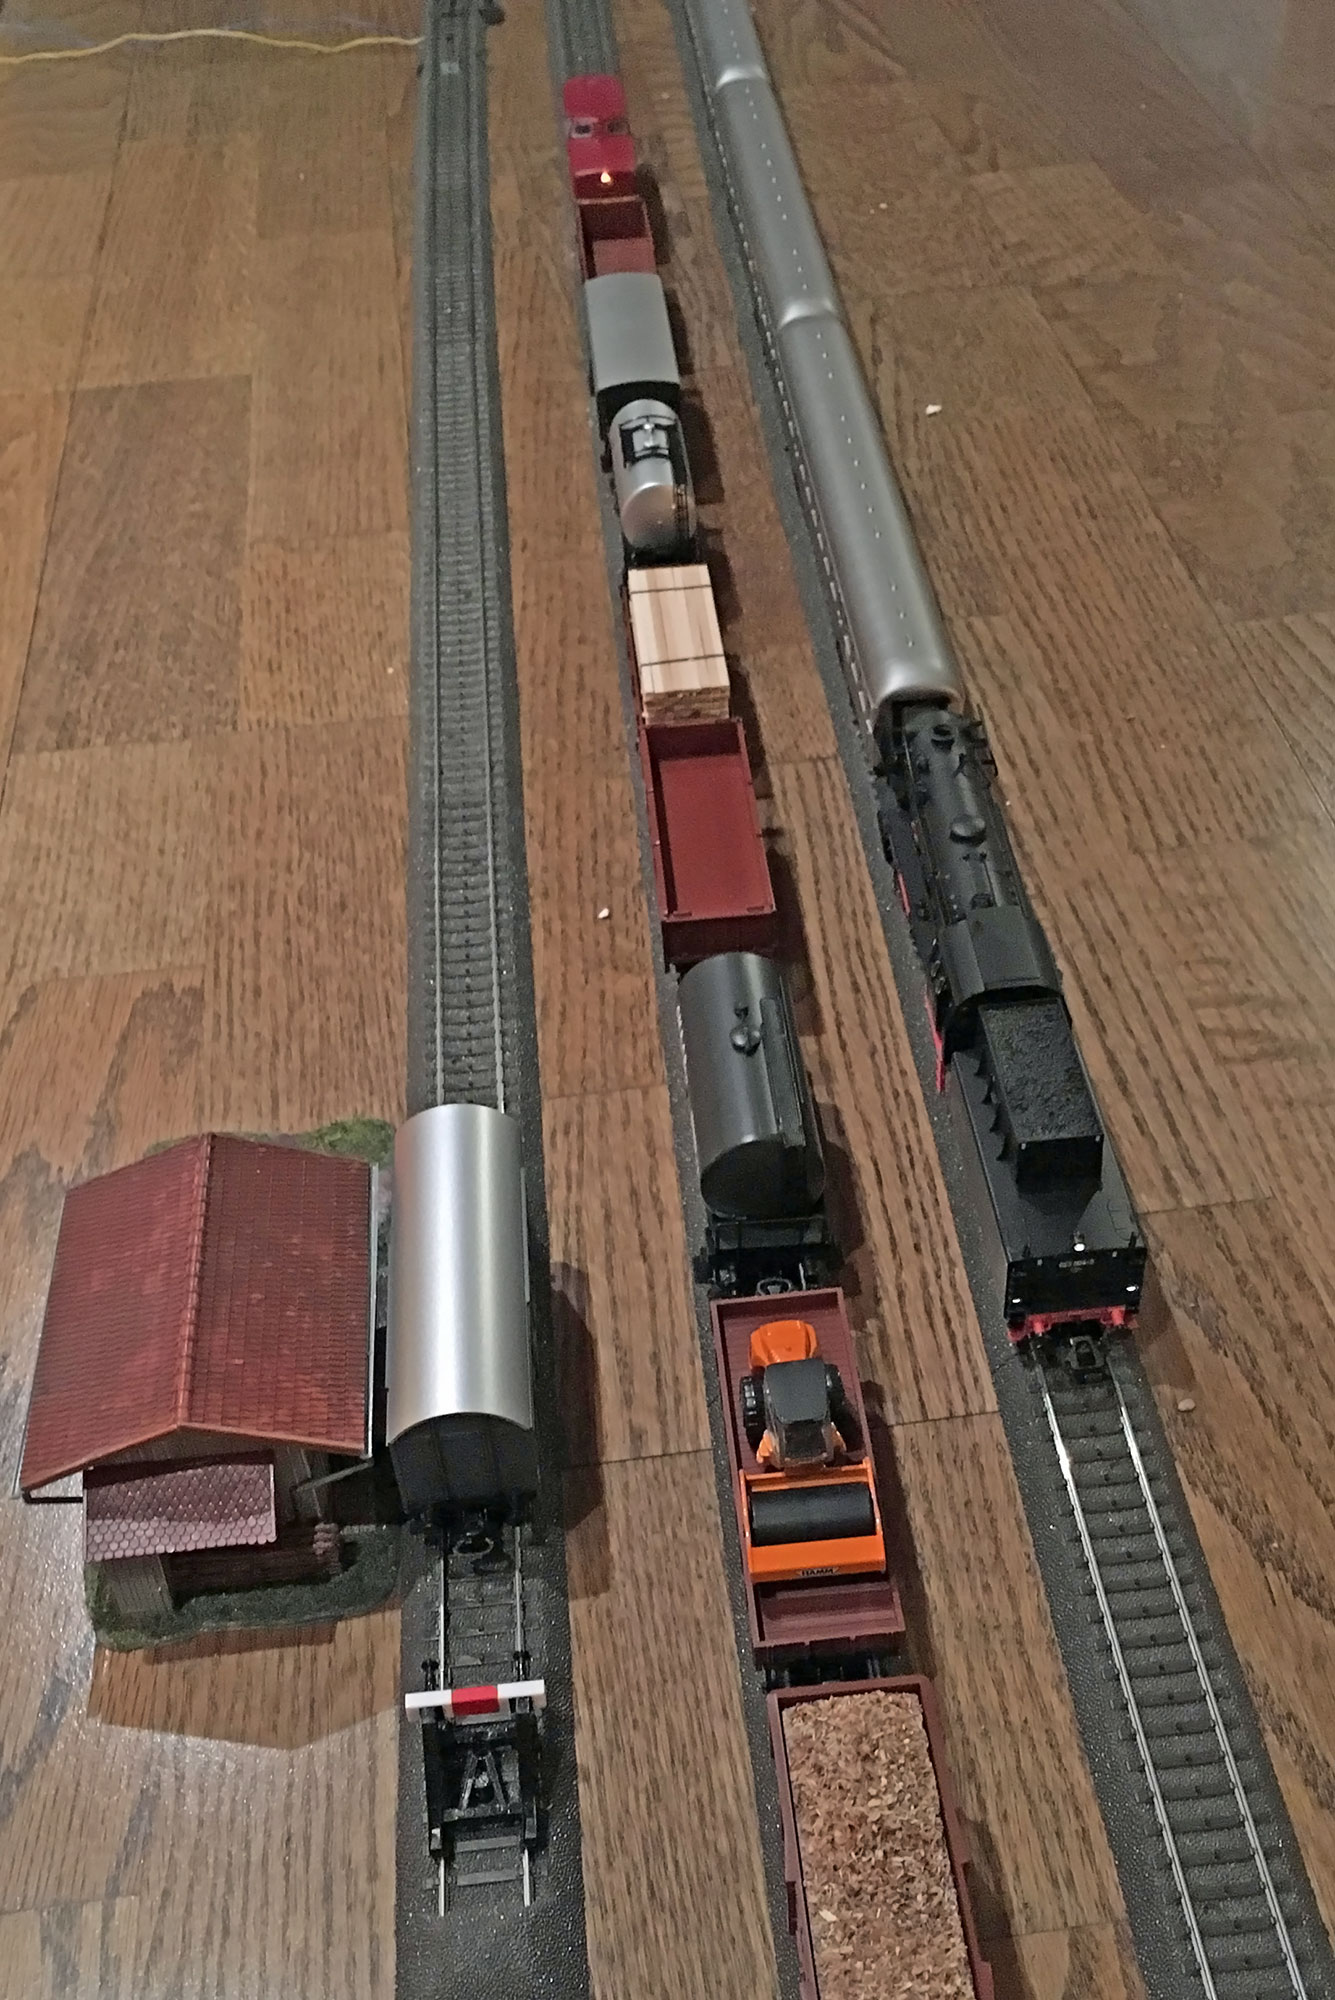 Train miniatures à même le parquet